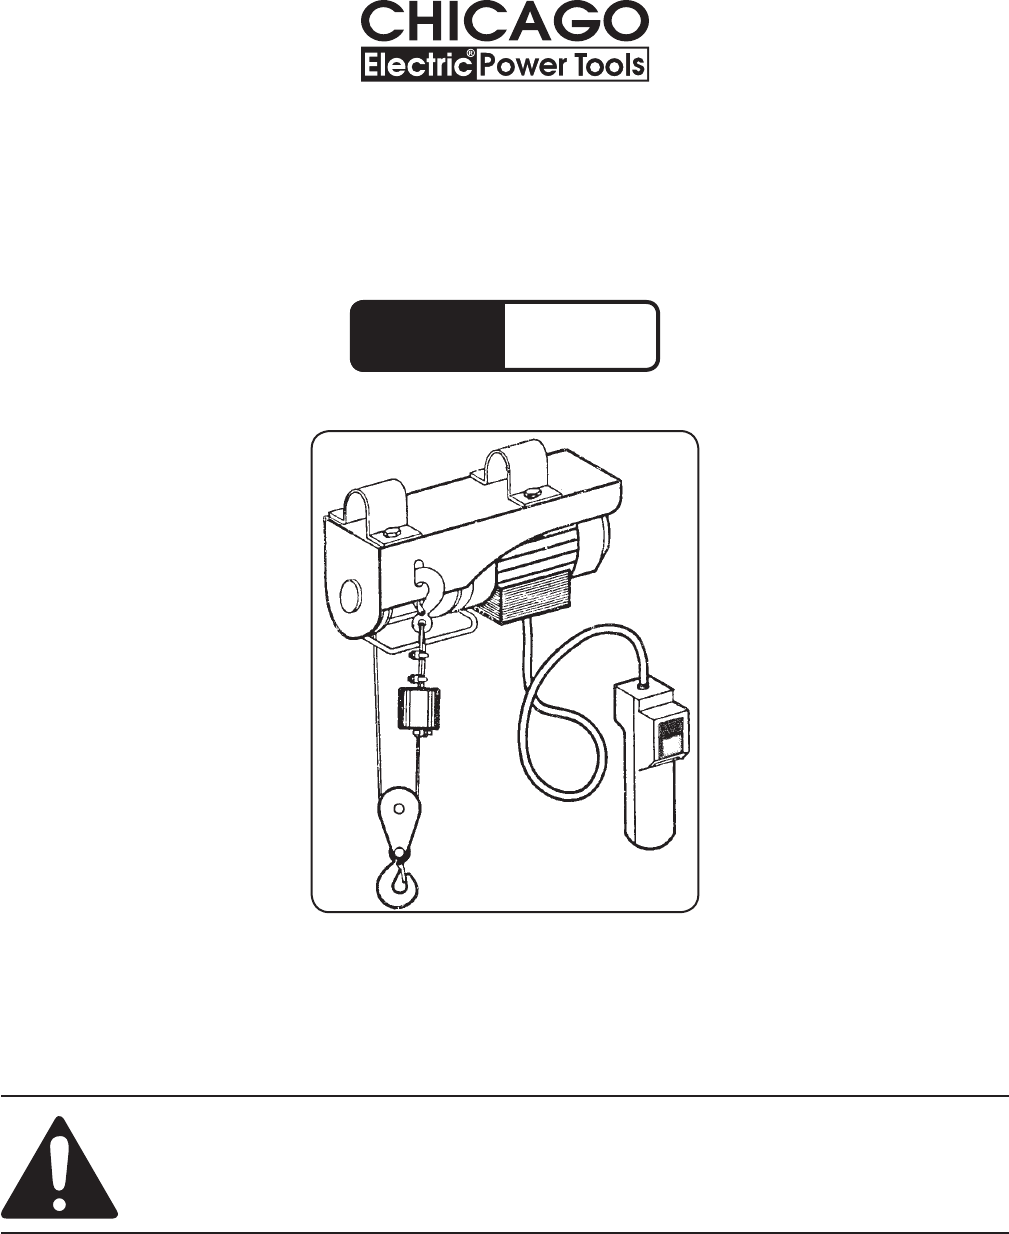 hight resolution of chicago electric 40765 personal lift user manual chicago electric hoist wiring diagram